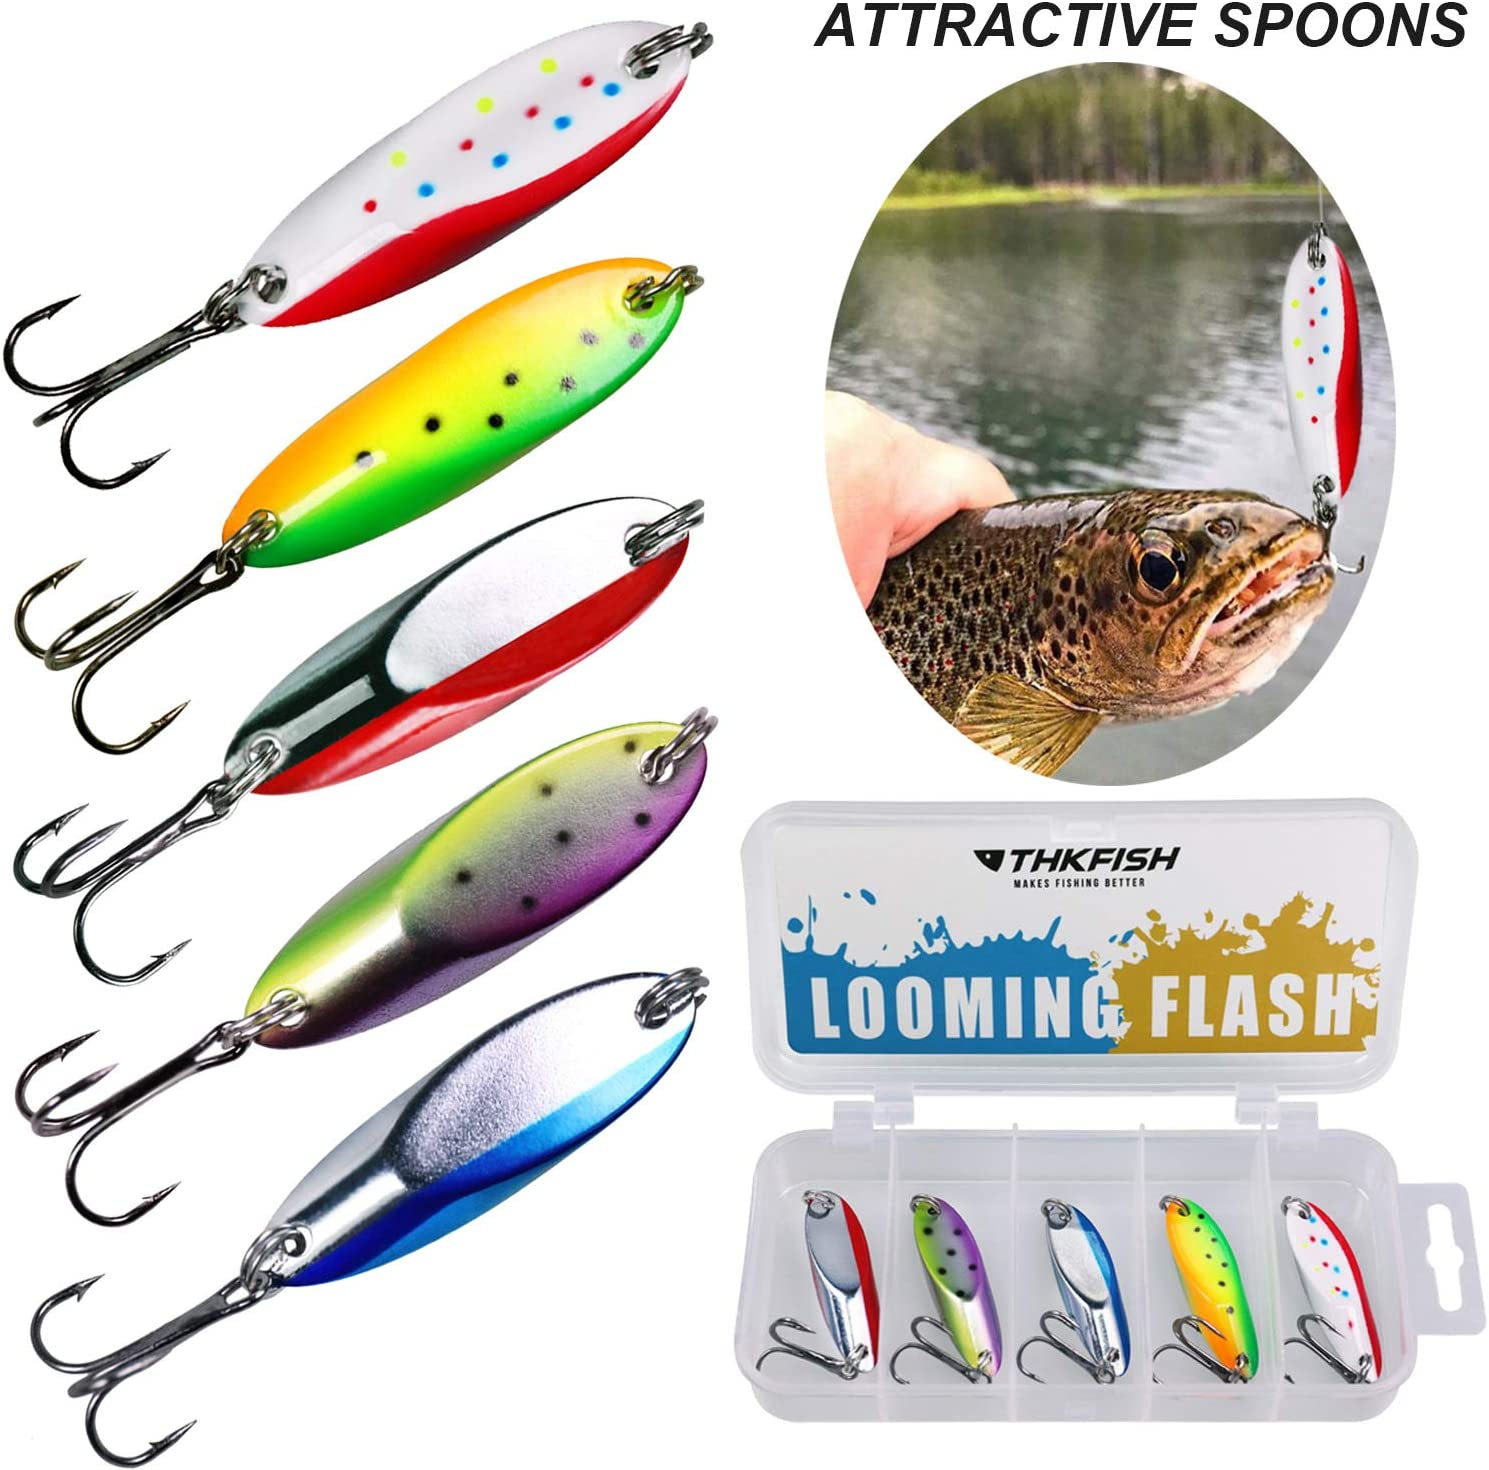 THKFISH Angeln Spoon Kunstk/öder Angelk/öder Spoons f/ür Trout Pike Bass Crappie Walleye 3,5g 5,5g 7,5g 10,5g 5St/ück